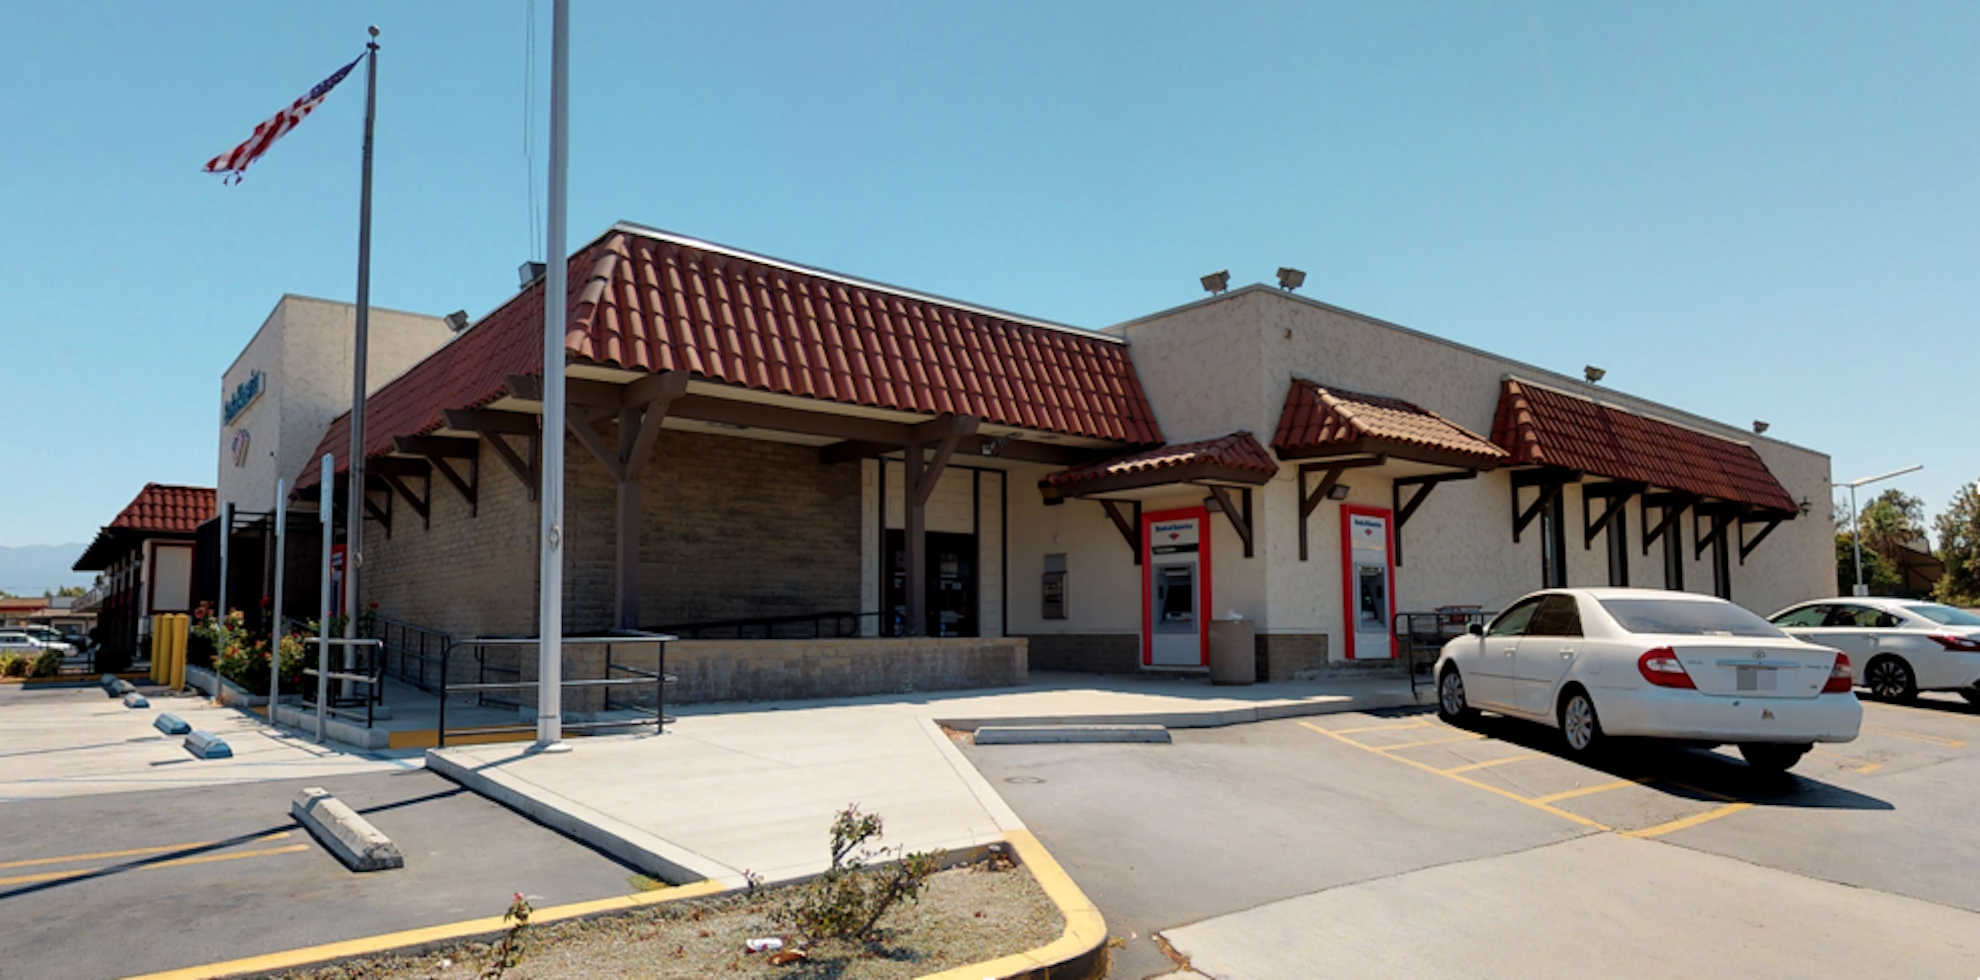 Bank of America financial center with drive-thru ATM | 2690 Hamner Ave, Norco, CA 92860